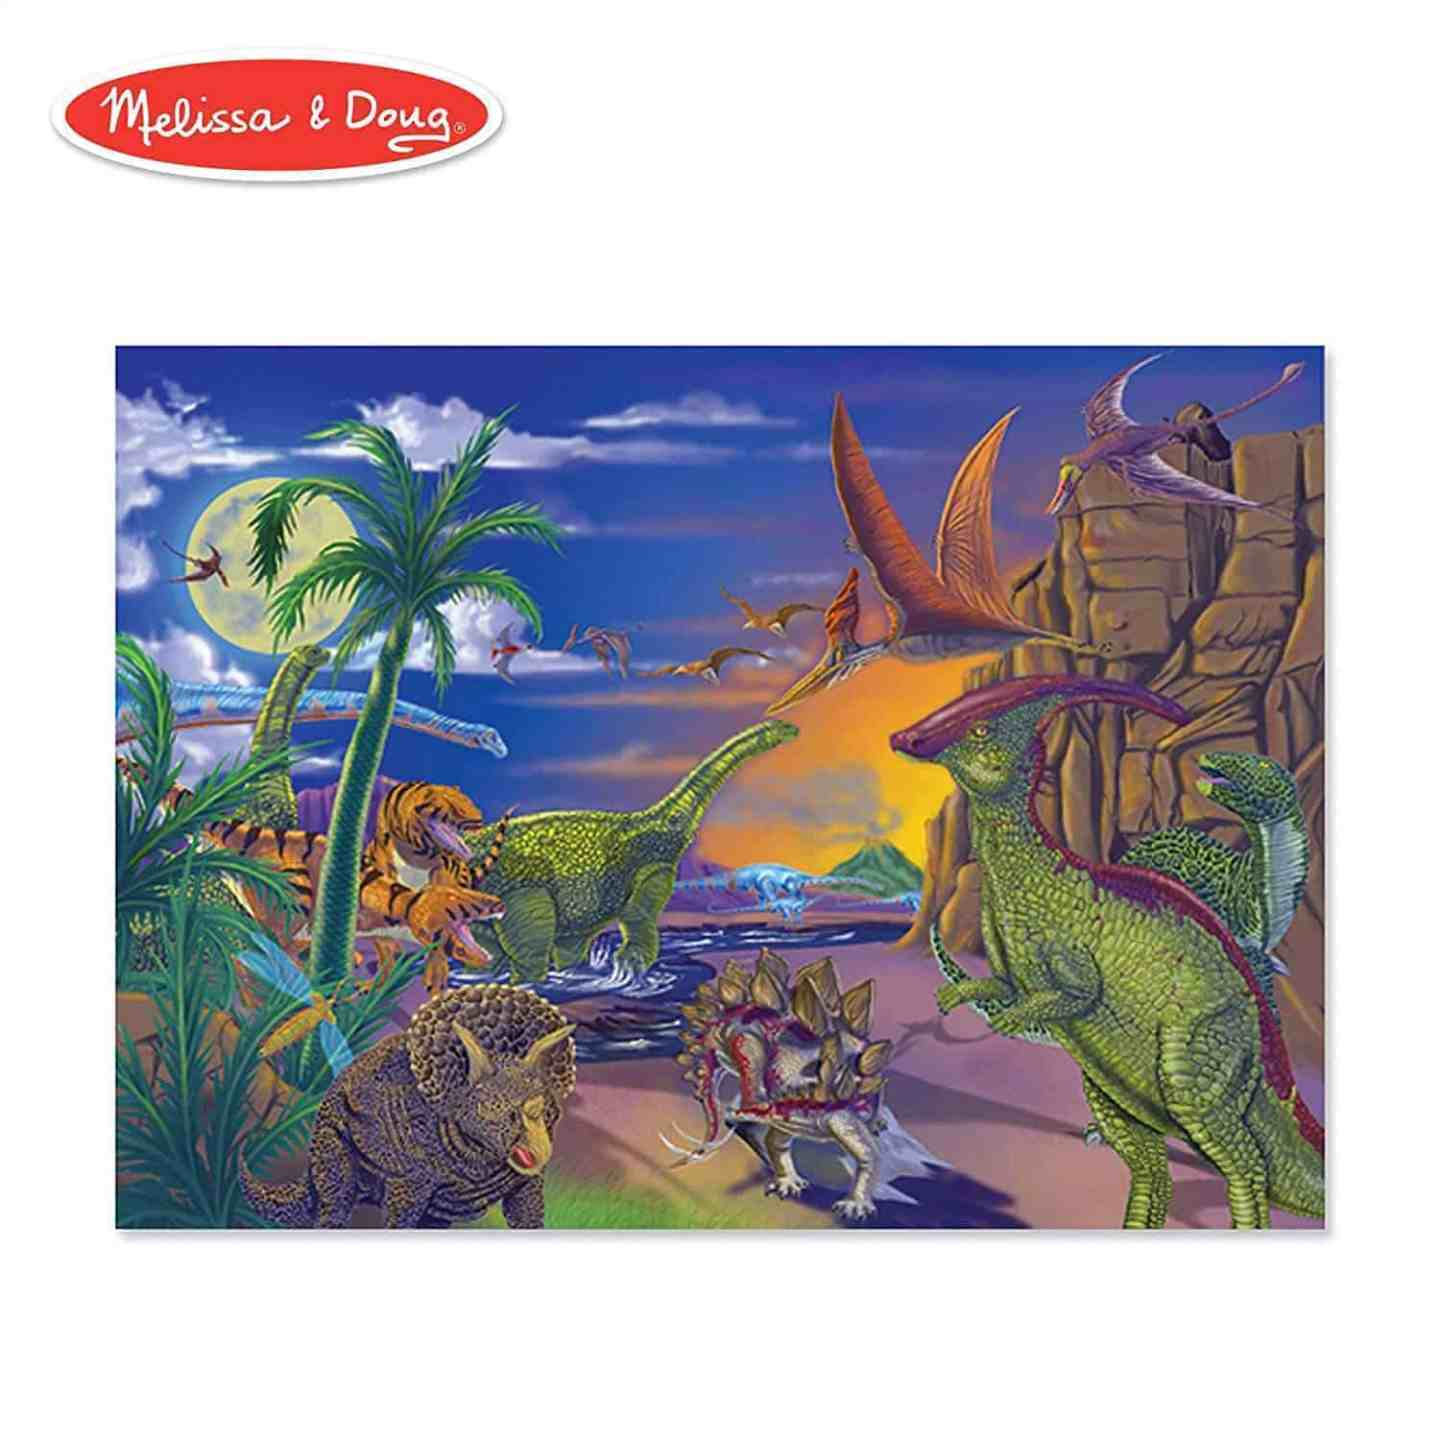 Melissa Doug Dinosaurs Floor Puzzle 60 pieces